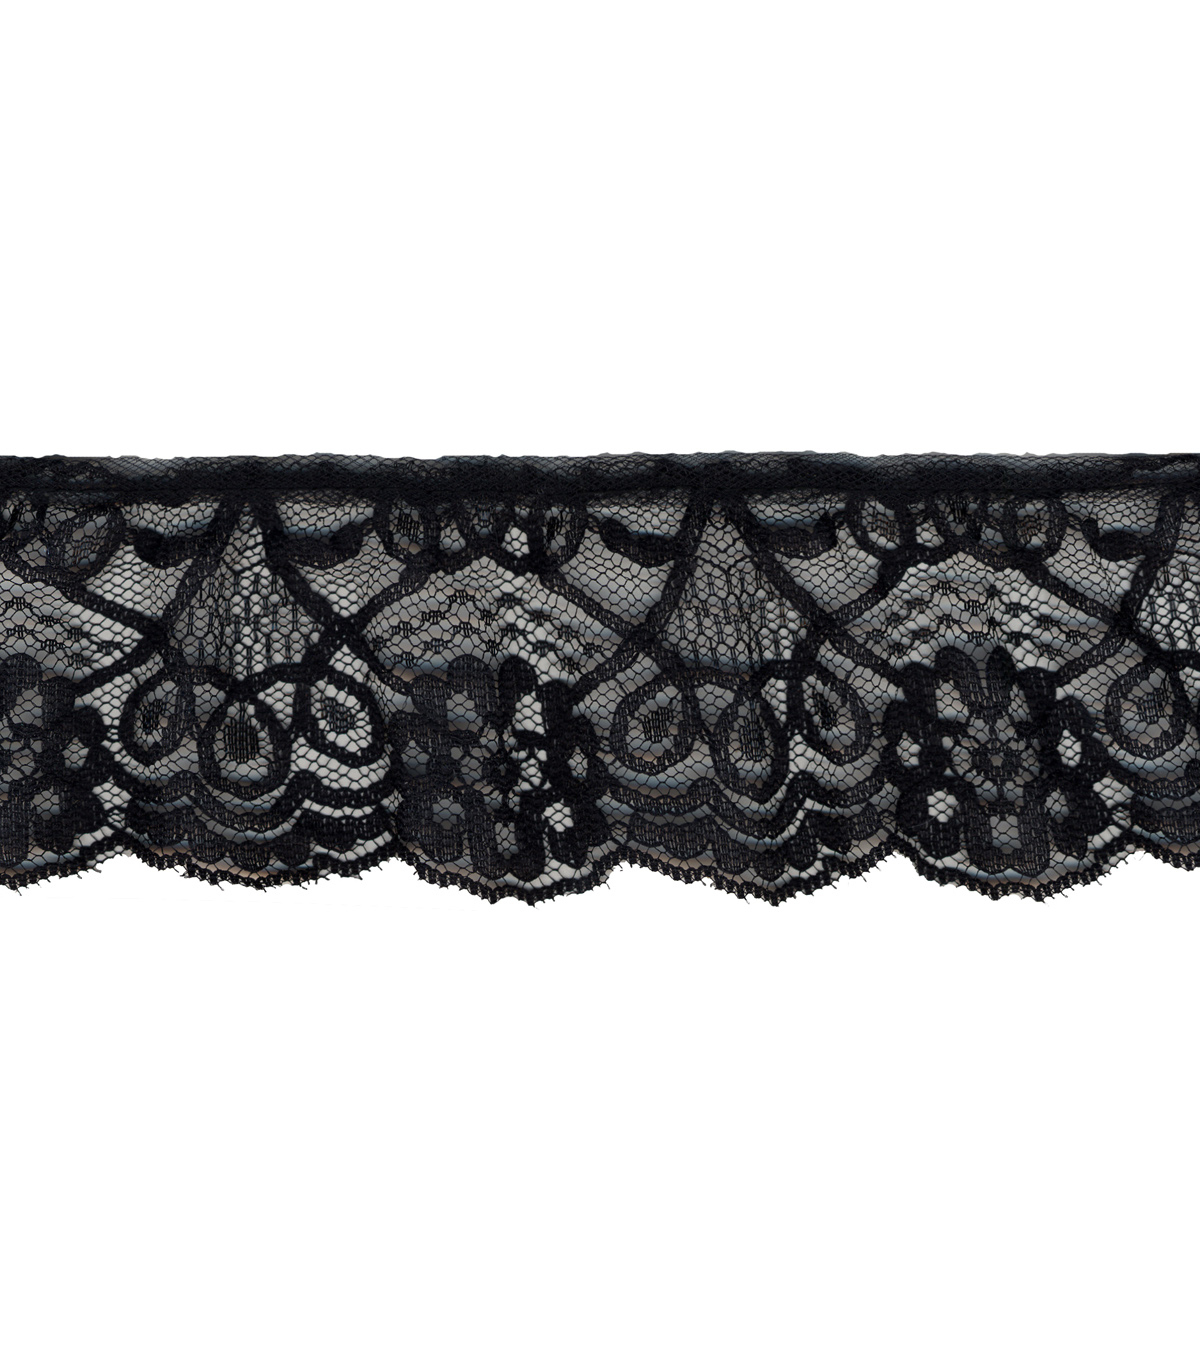 Simplicity Lace Ruffled Trim 2.5\u0027\u0027